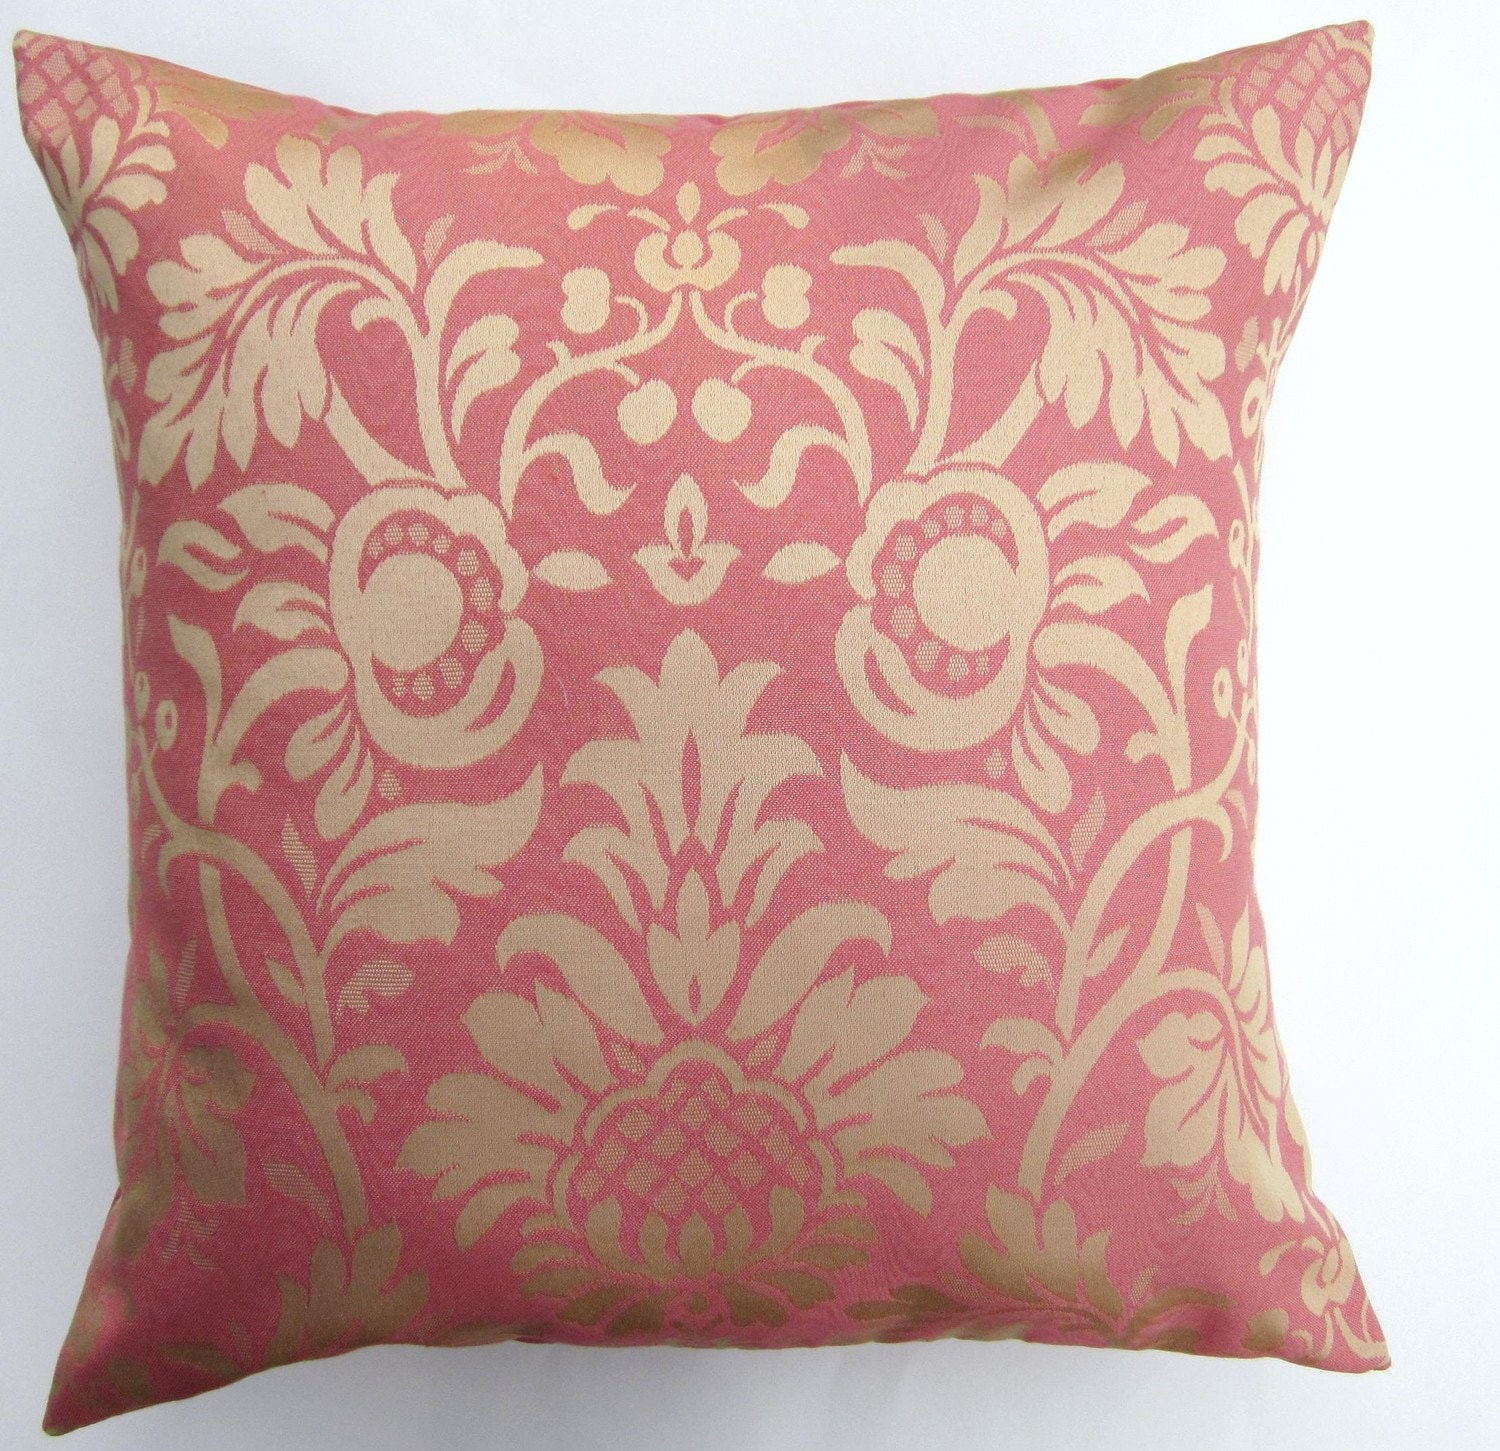 Pink Throw Pillows For Couch : Pink and Gold Damask Throw Pillow Cover Honeysuckle Pink and